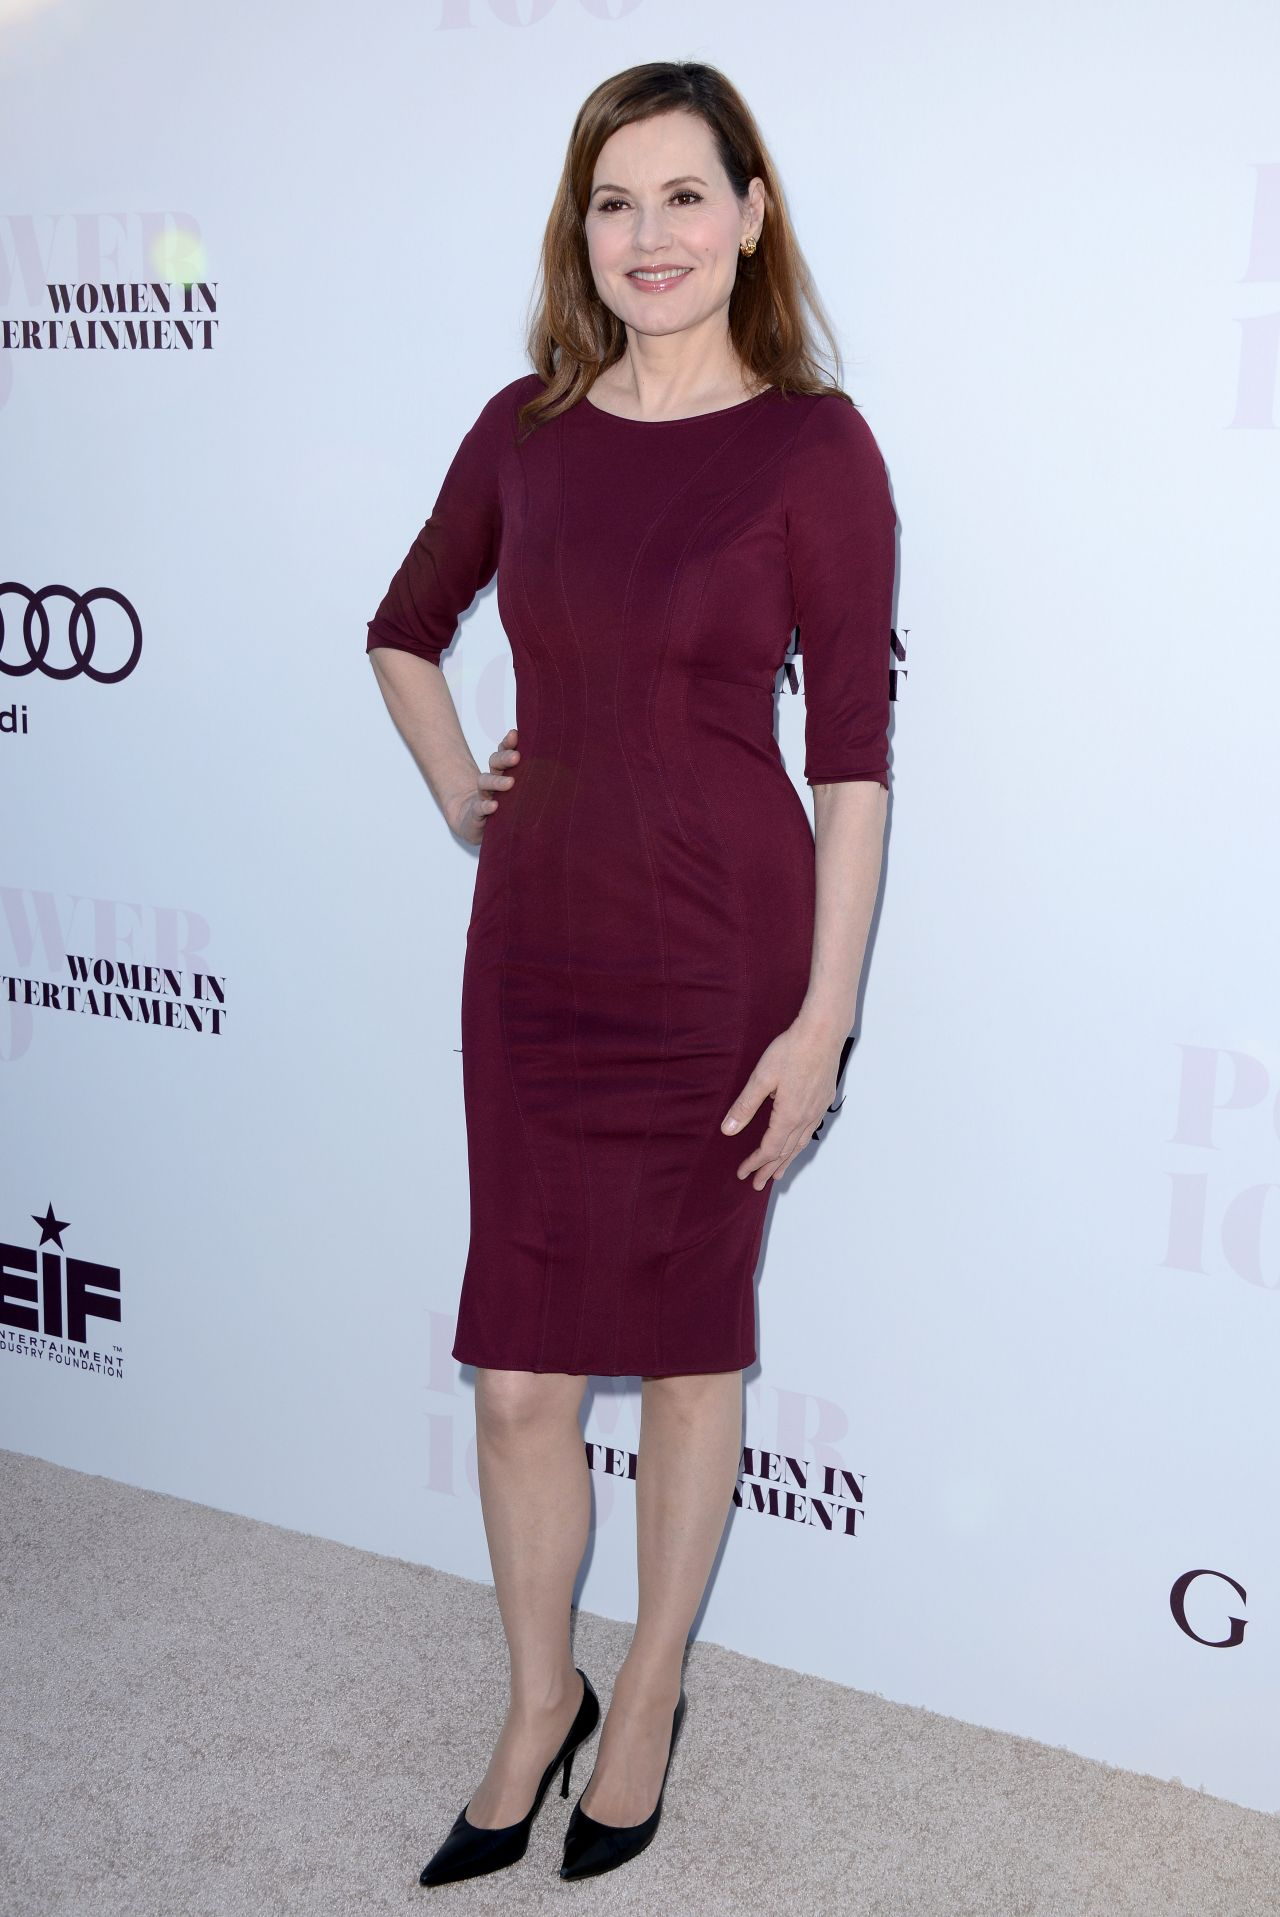 Geena Davis 2014 Thr S Women In Entertainment Breakfast In Los Angeles